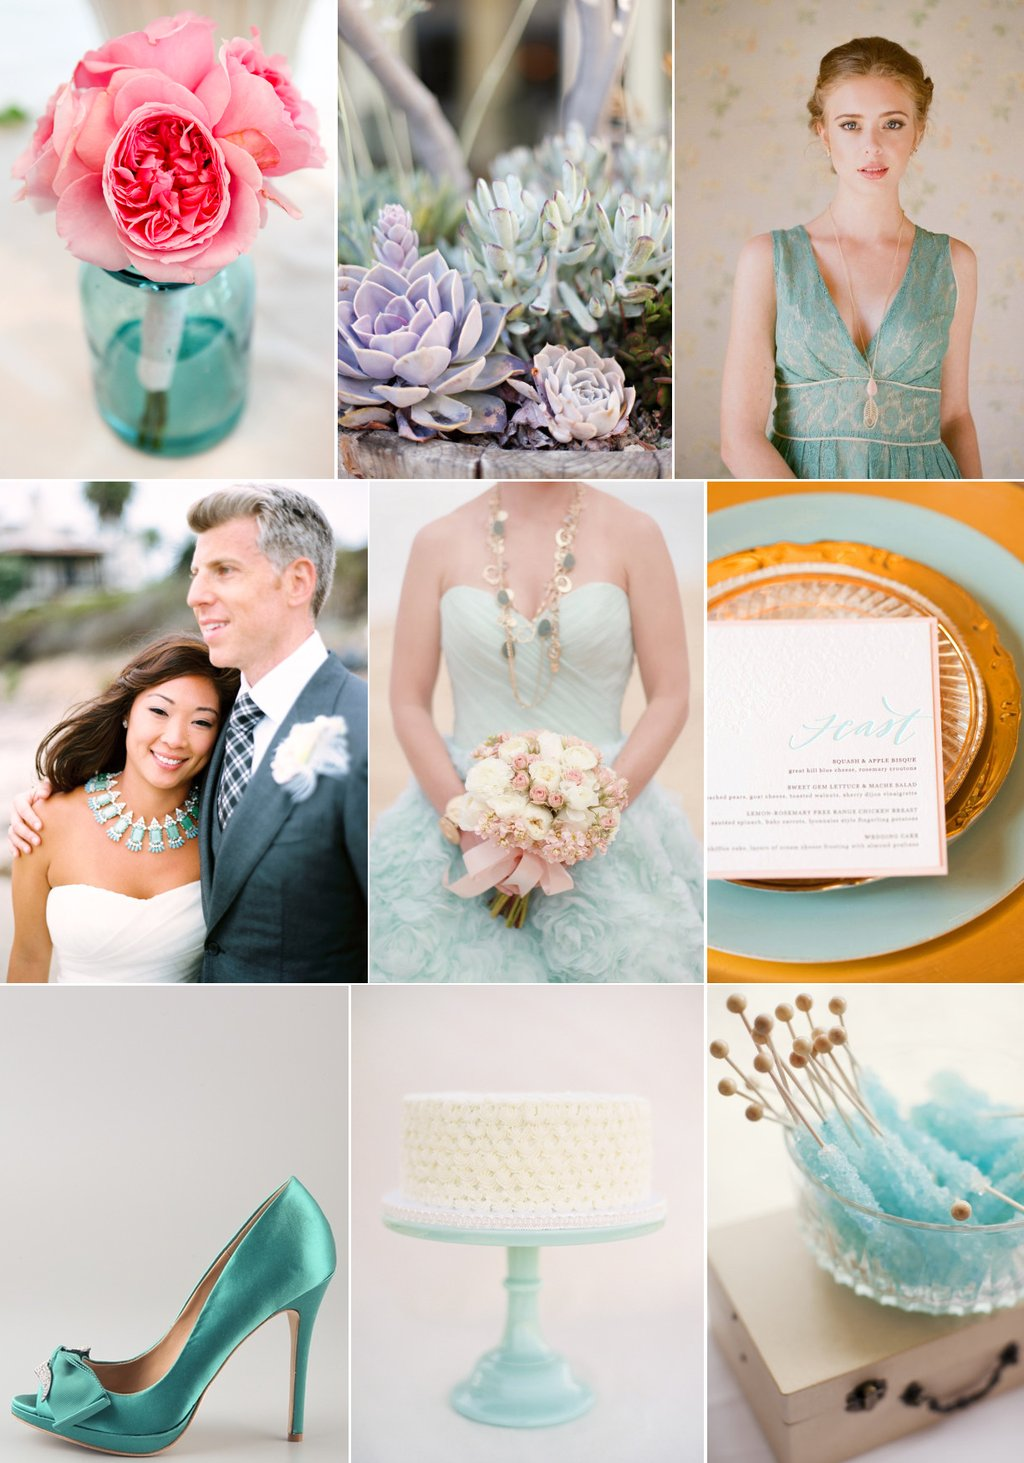 Mint-green-wedding-inspiration-modern-wedding-color-palettes-cool.full